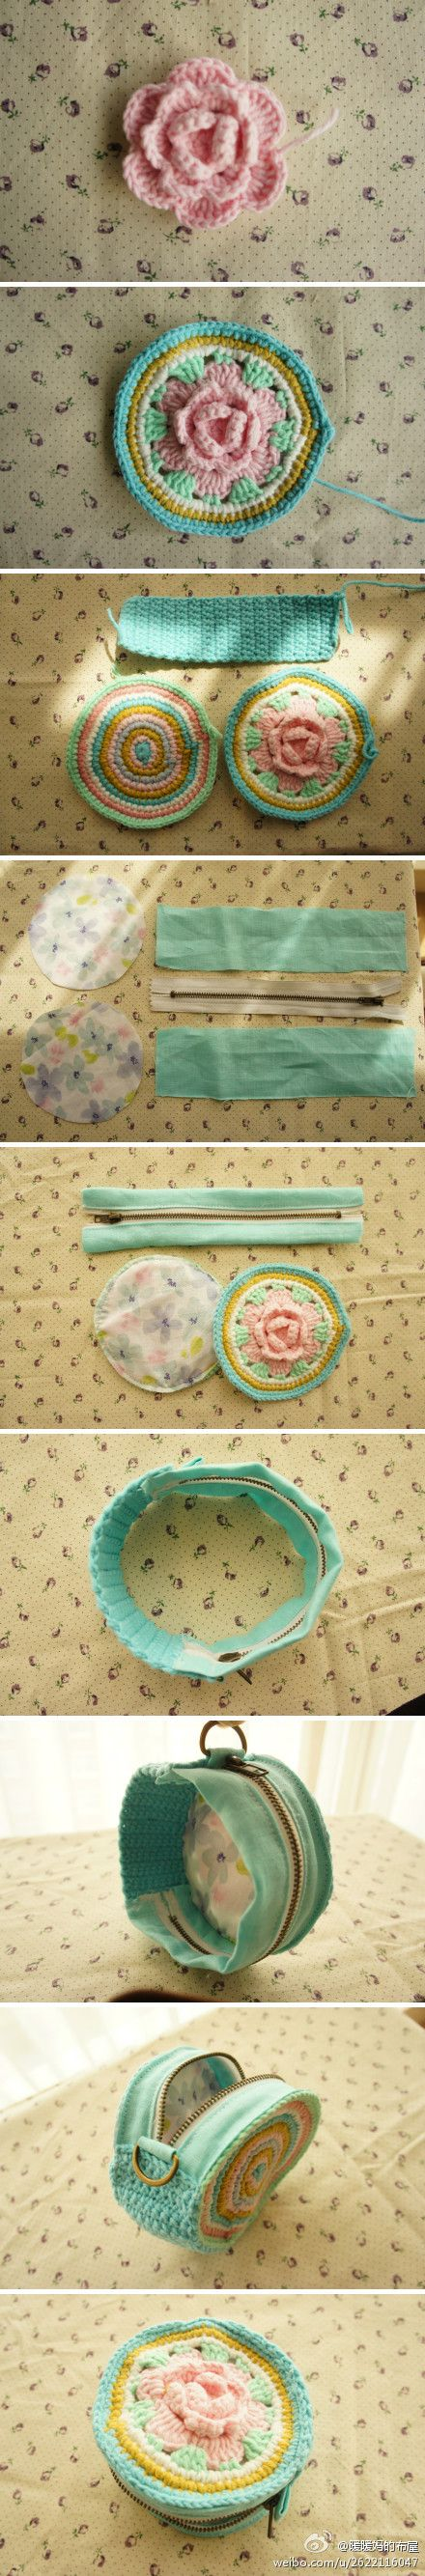 diy fabric & crochet zipper coin purse. Not in English, but several good photos. #crochet